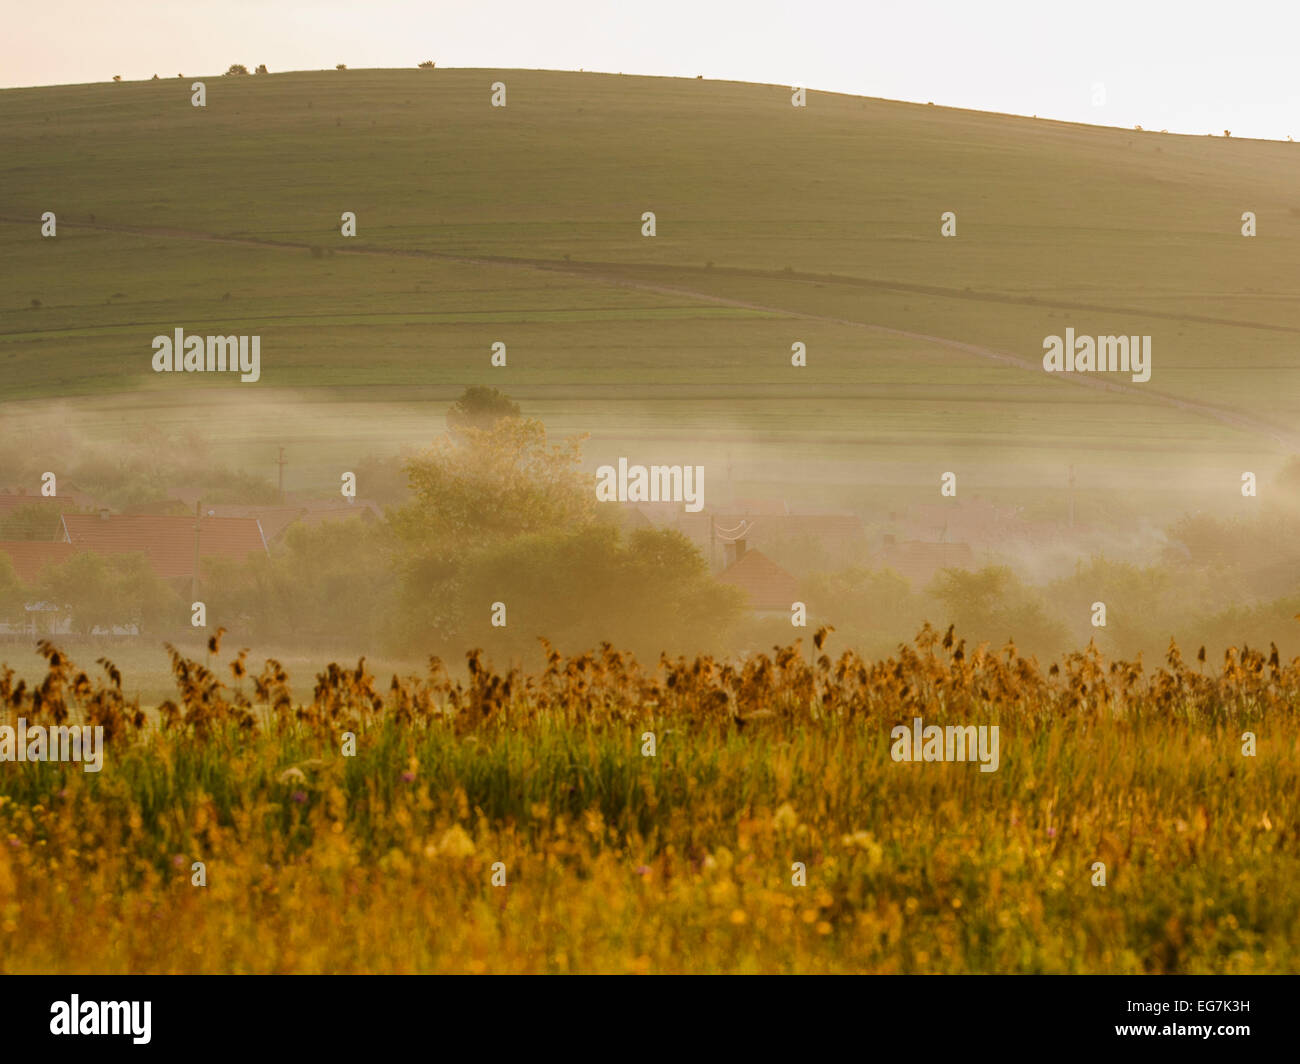 Misty morning landscape with reed in foreground and a village in background. Dreamy, fog, dusk, dawn, hills. Stock Photo